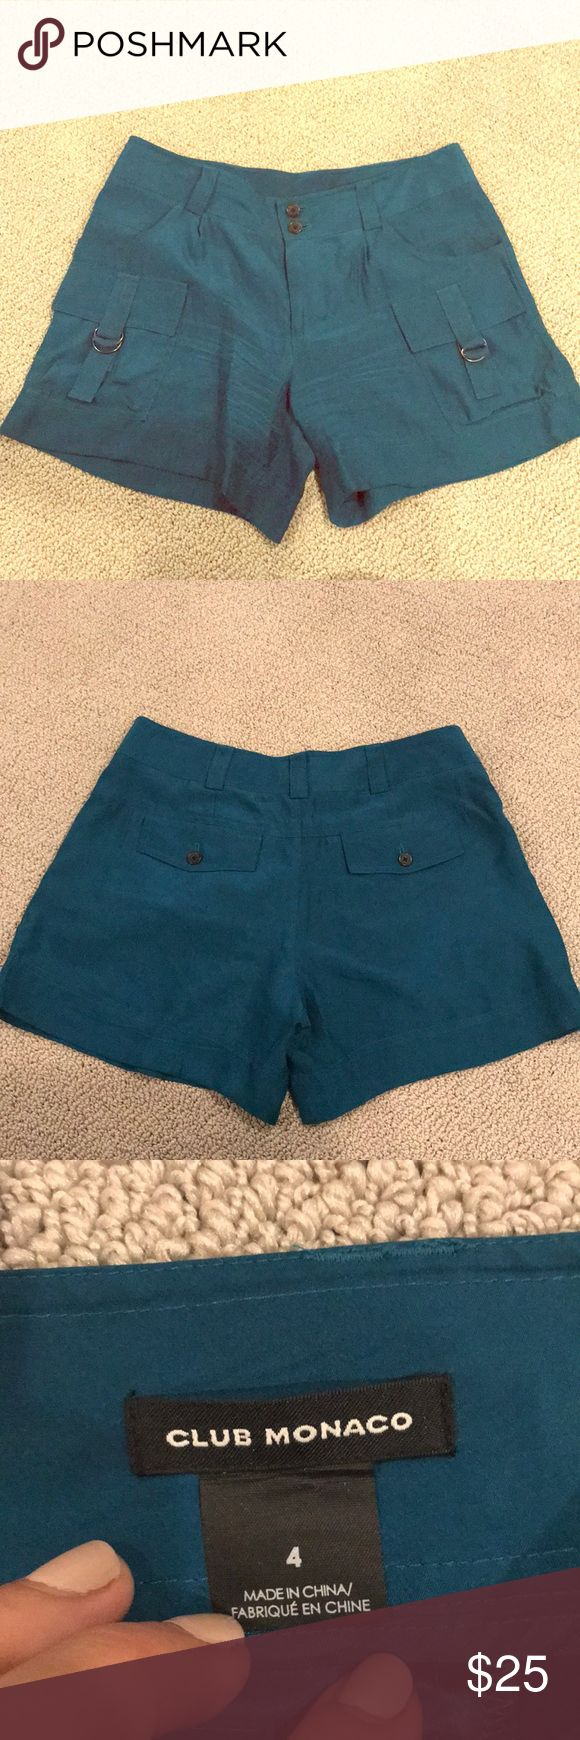 Club Monaco Silk Teal Shorts Club Monaco 100% Silk Teal Shorts with cargo pocket detail. Size 4. Only worn twice. Excellent condition. Great for summer or in the fall/winter with tights! Club Monaco Shorts